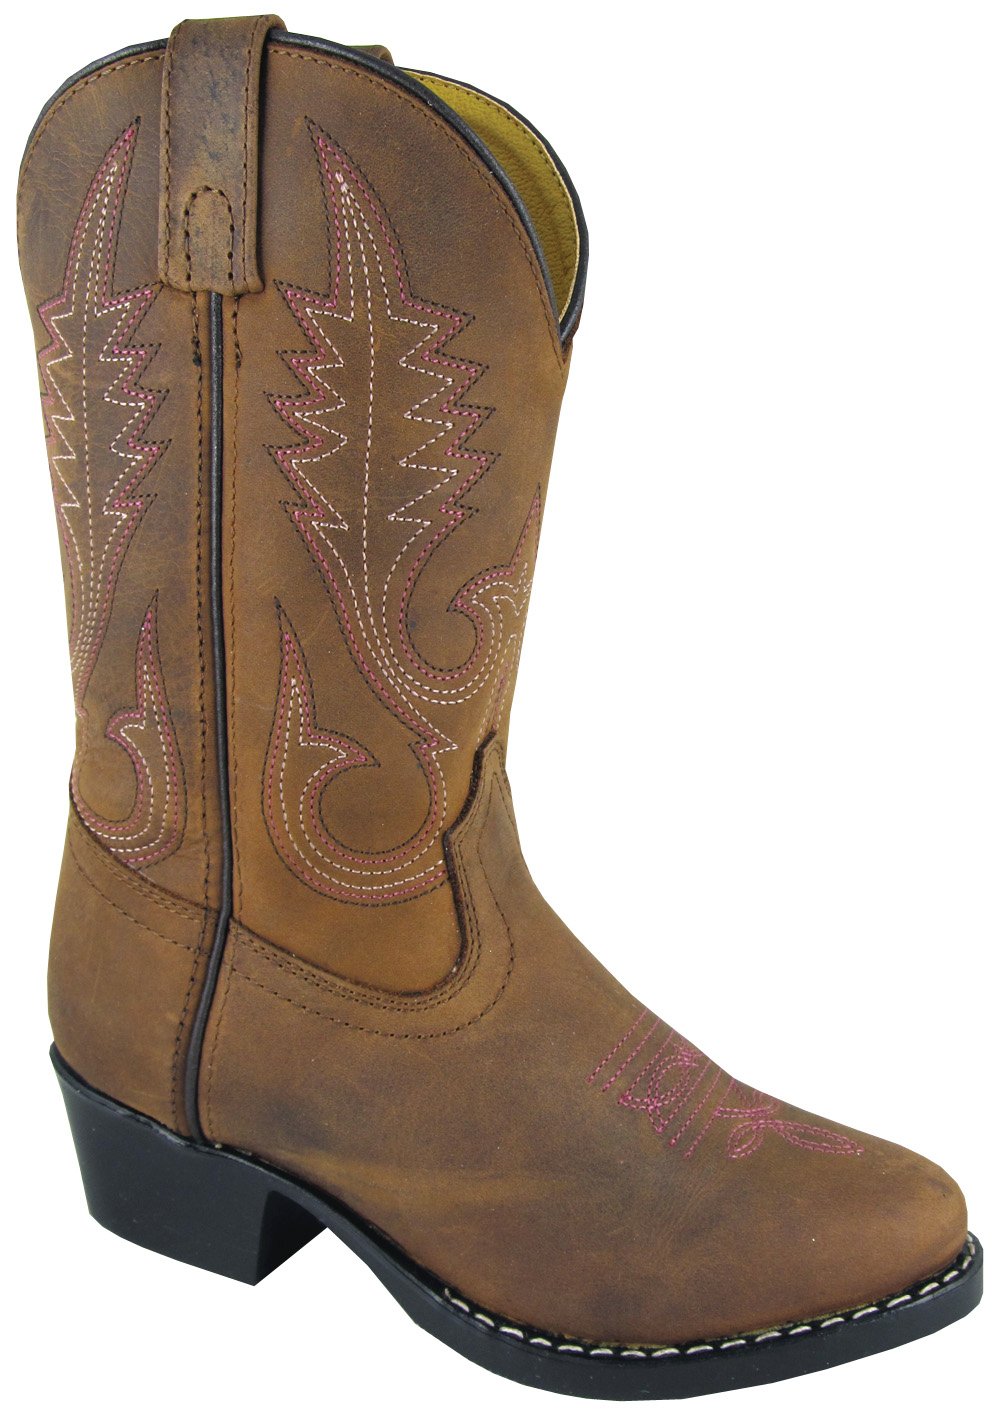 Little cowgirl boots galleryhip com the hippest galleries